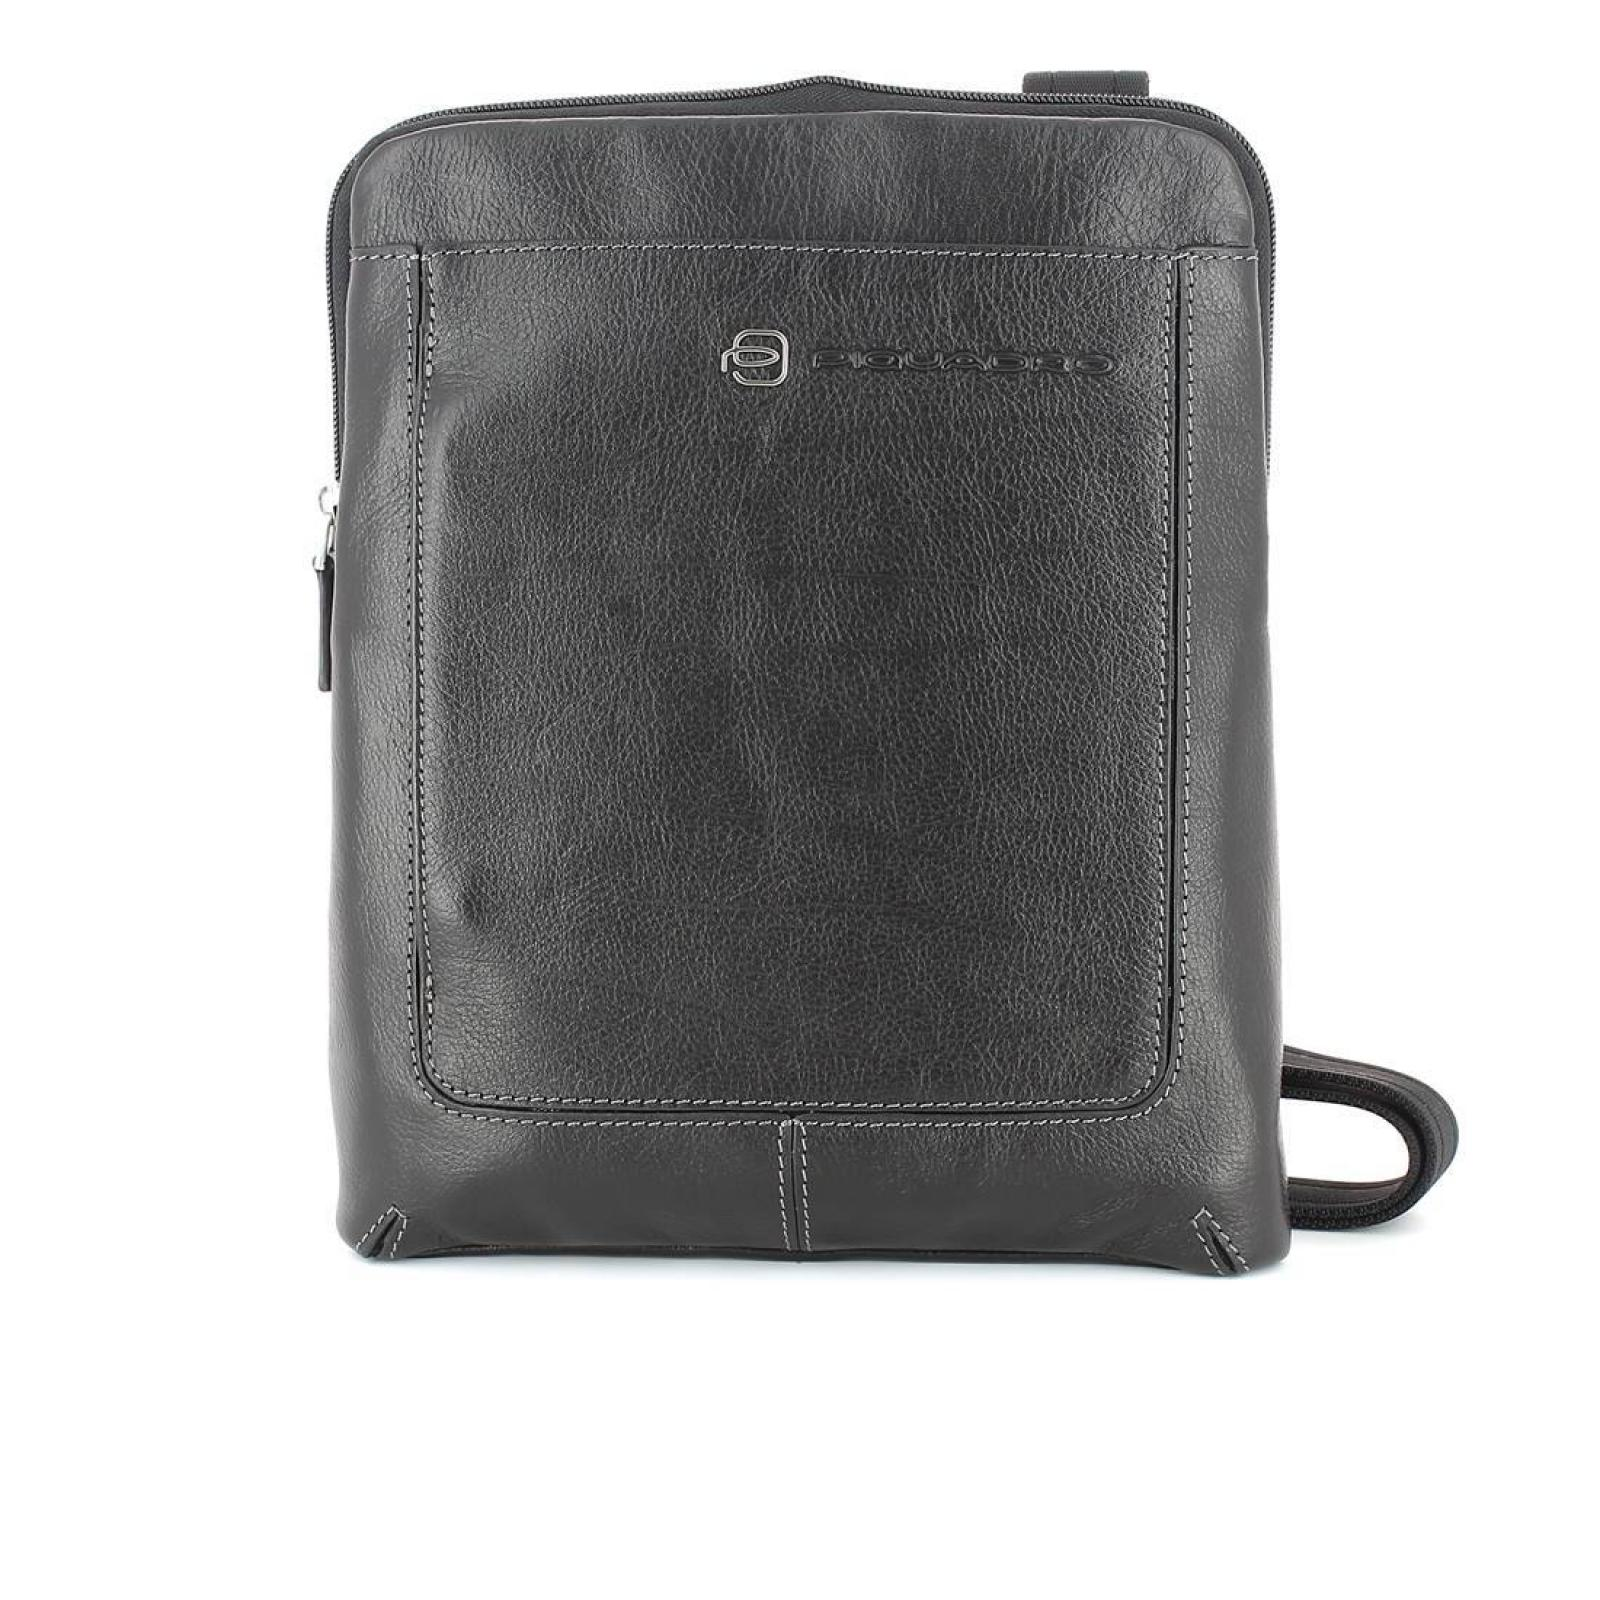 iPad Crossbody Bag VIBE